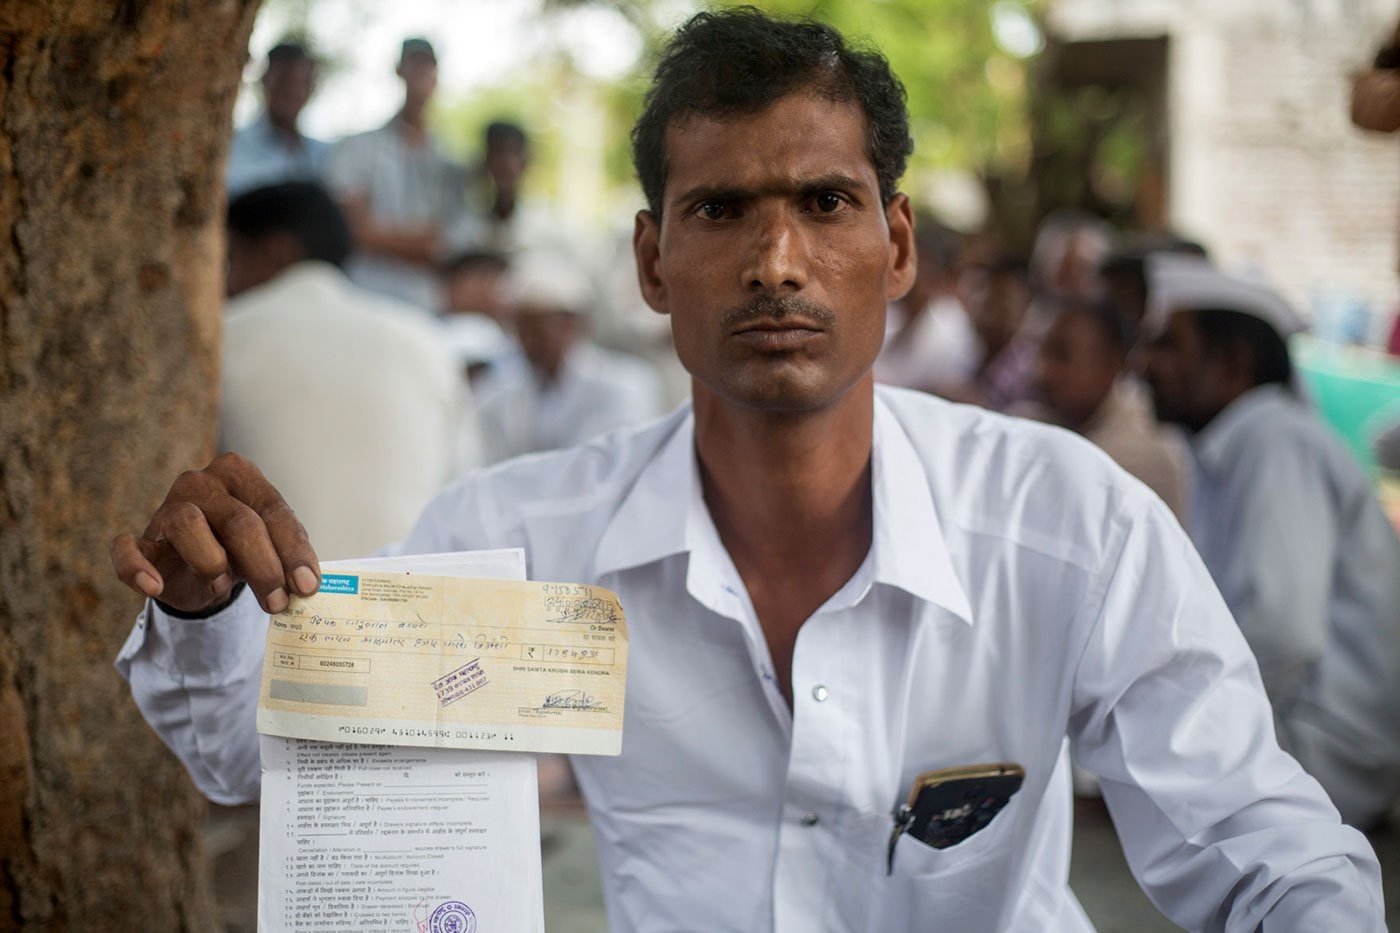 Deepak Badavne holds up the cheque he received in return for his cotton – it bounced three times. Image courtesy: Shrirang Swarge